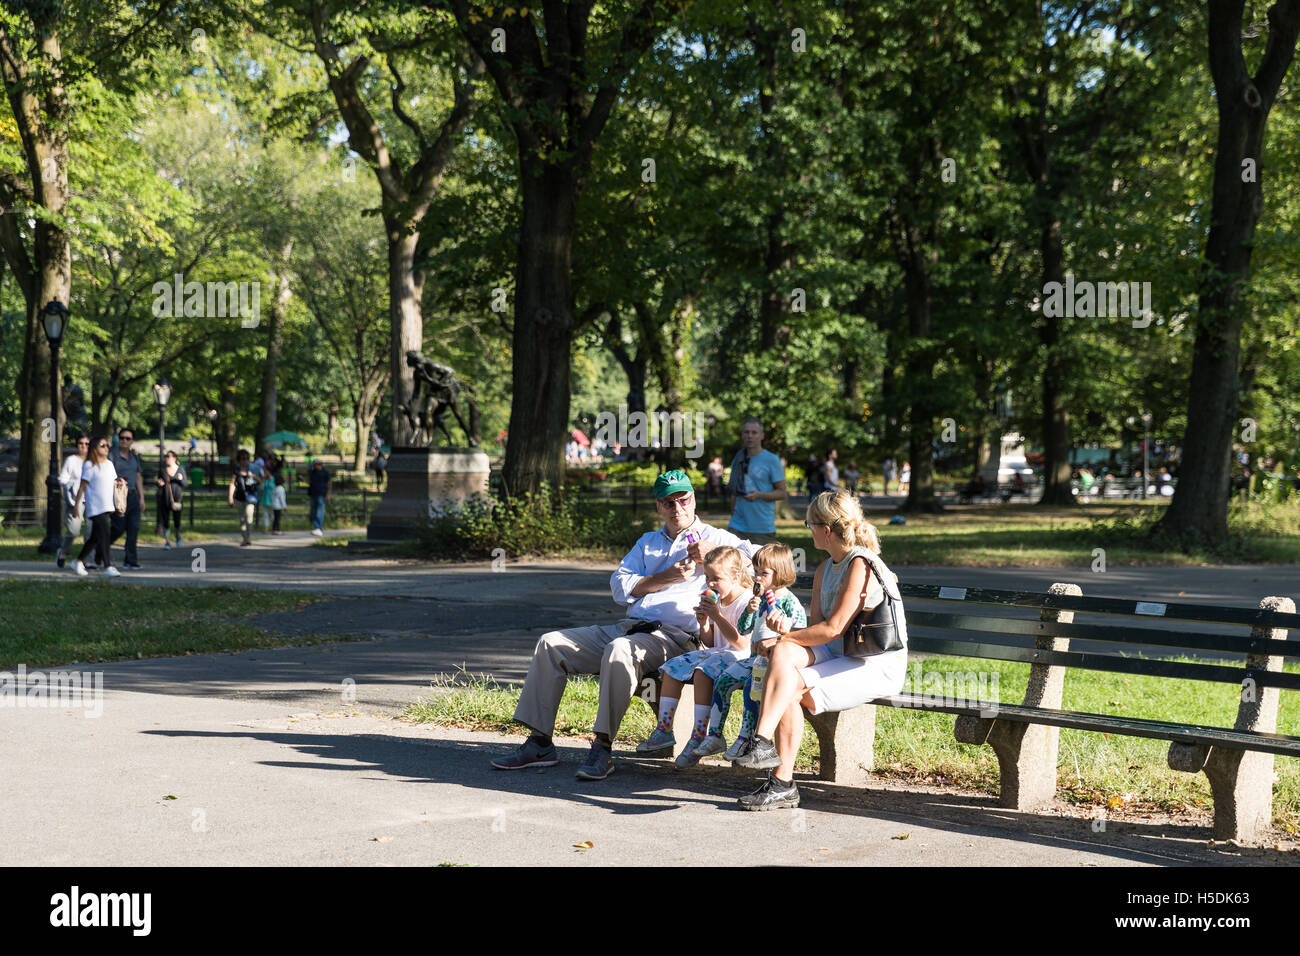 Family, parents and two children, sitting on a bench and eating ice creams - enjoying time together on a sunny day - Stock Image